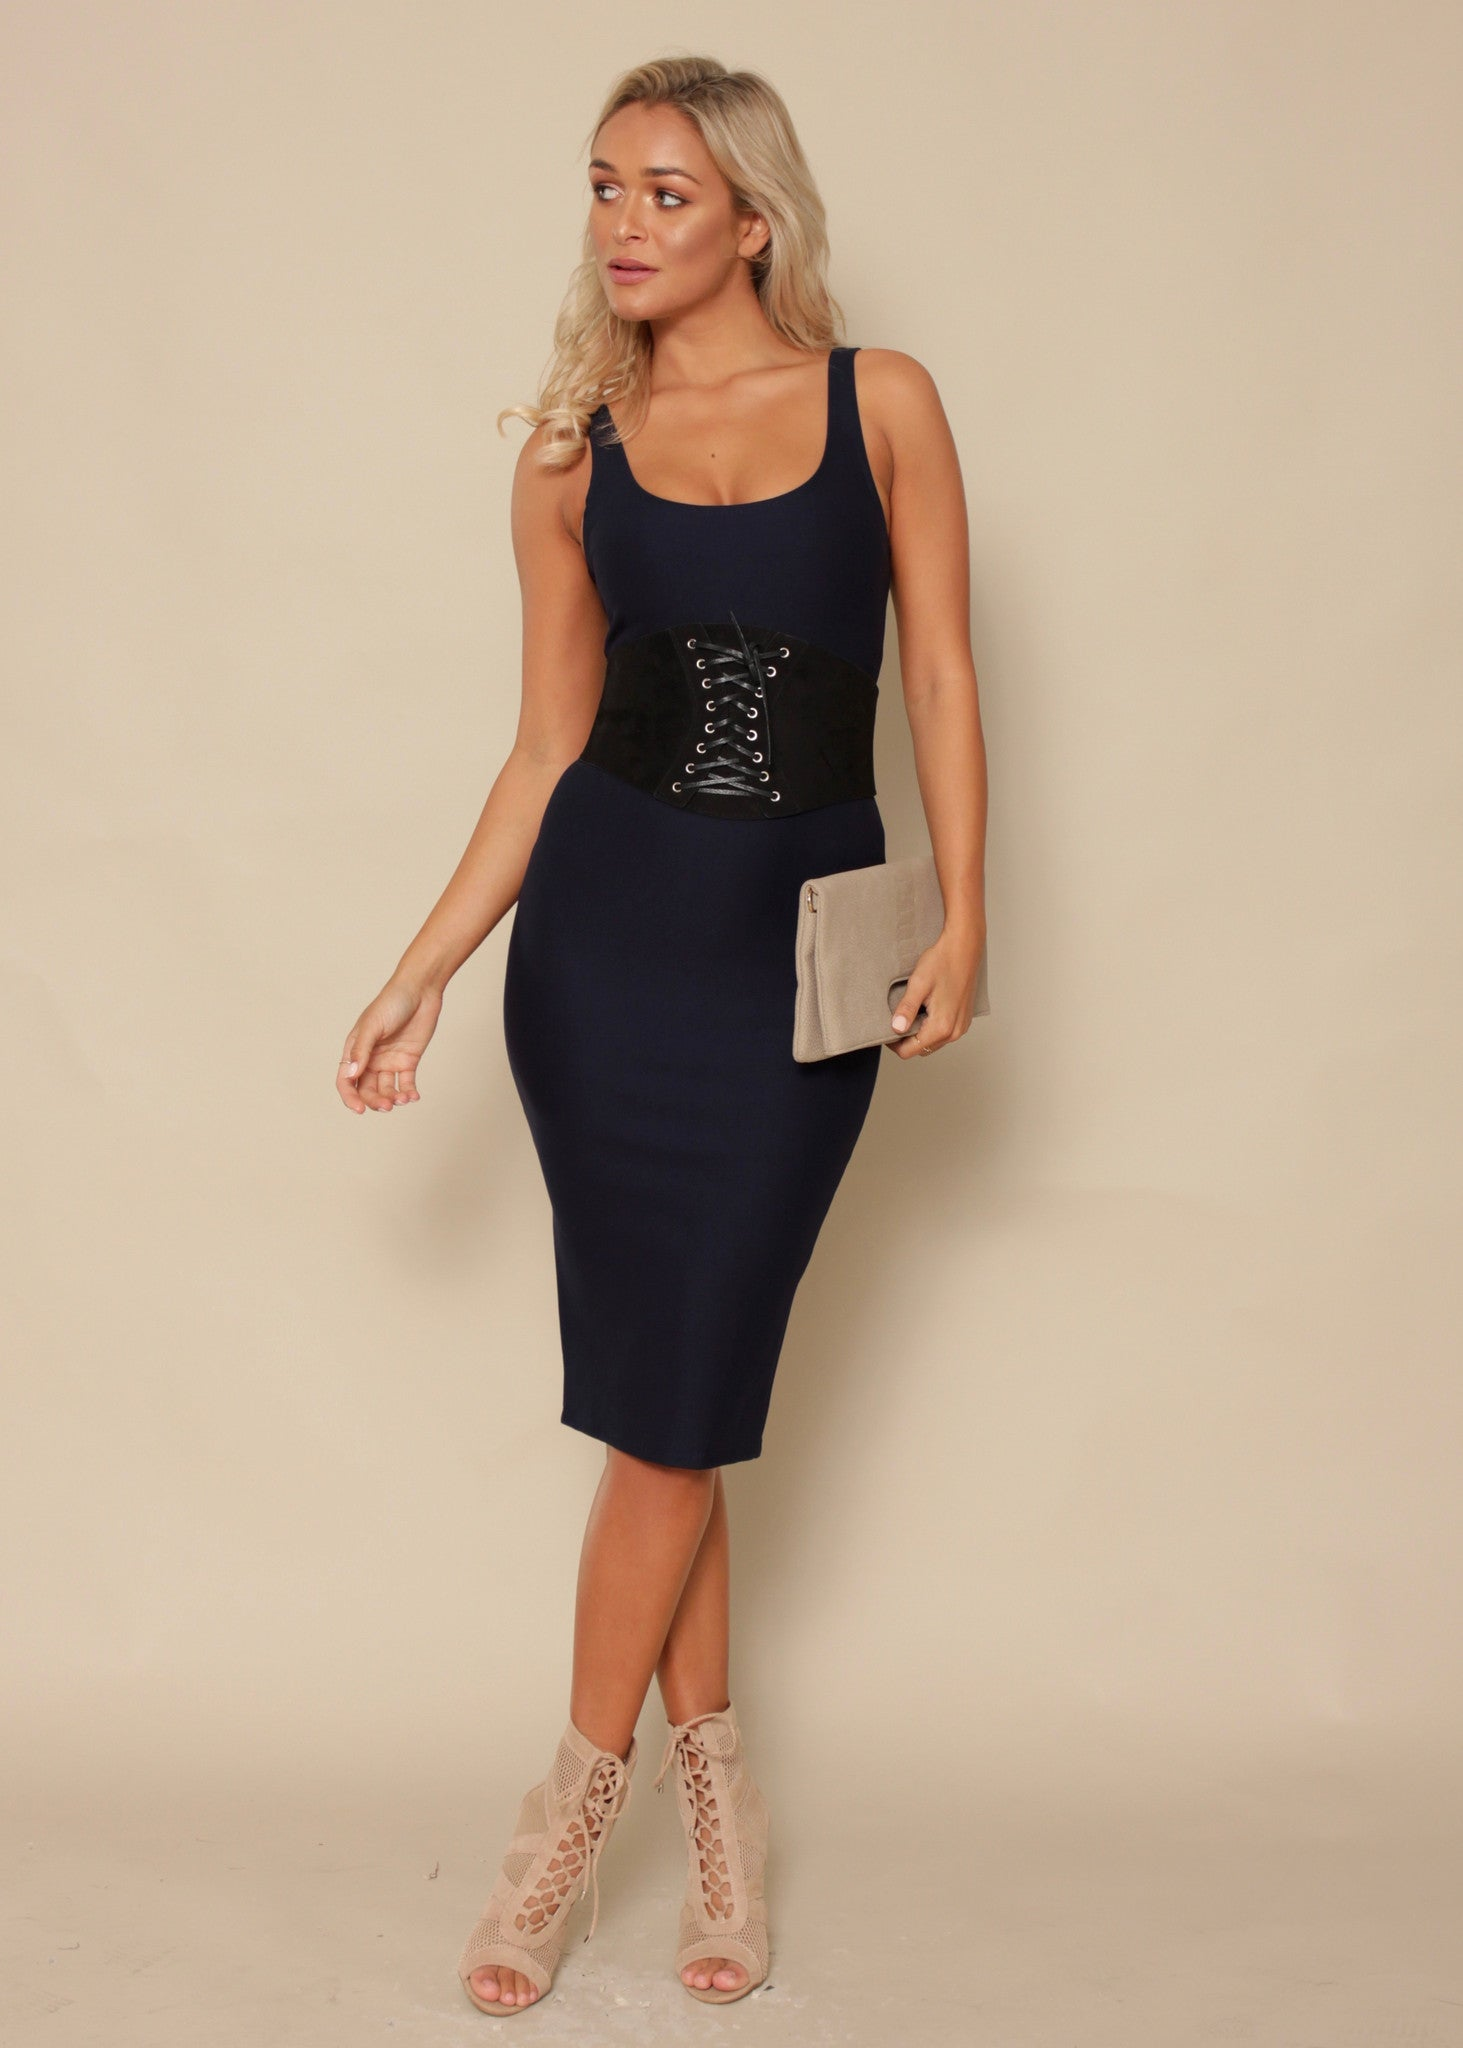 Say You Will Bodycon Dress - Navy